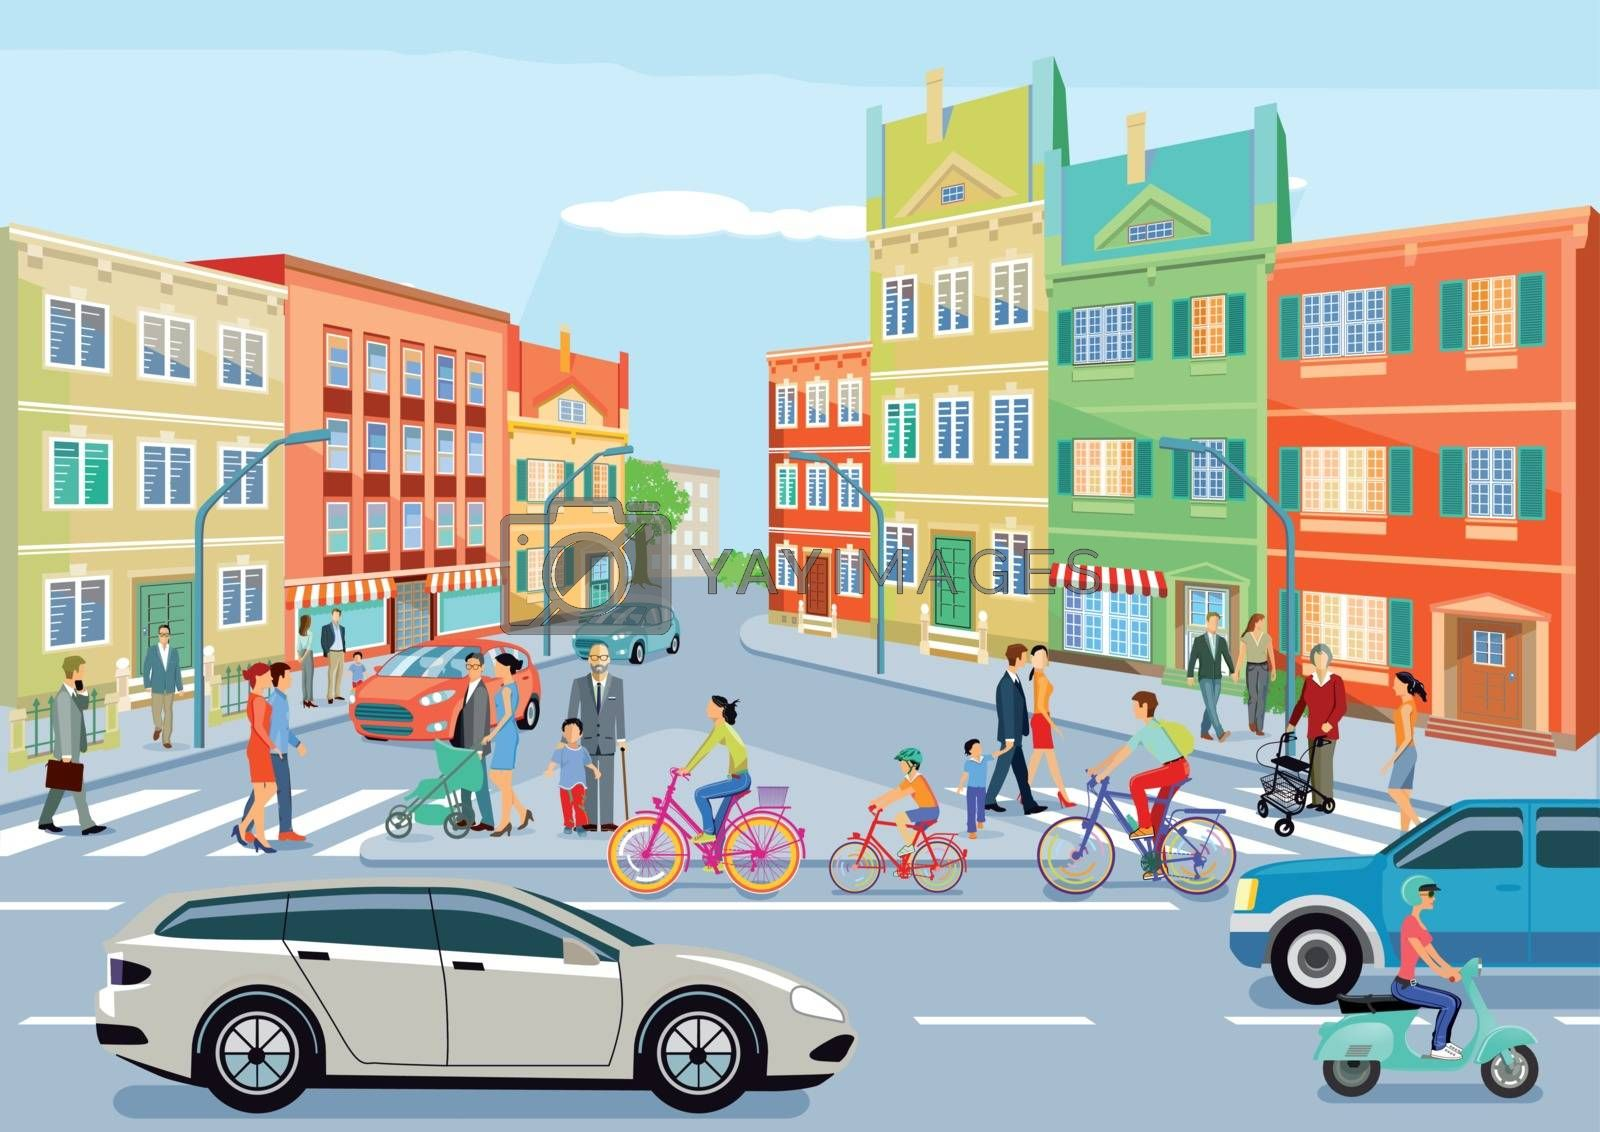 Royalty free image of Small town with traffic and pedestrians by scusi